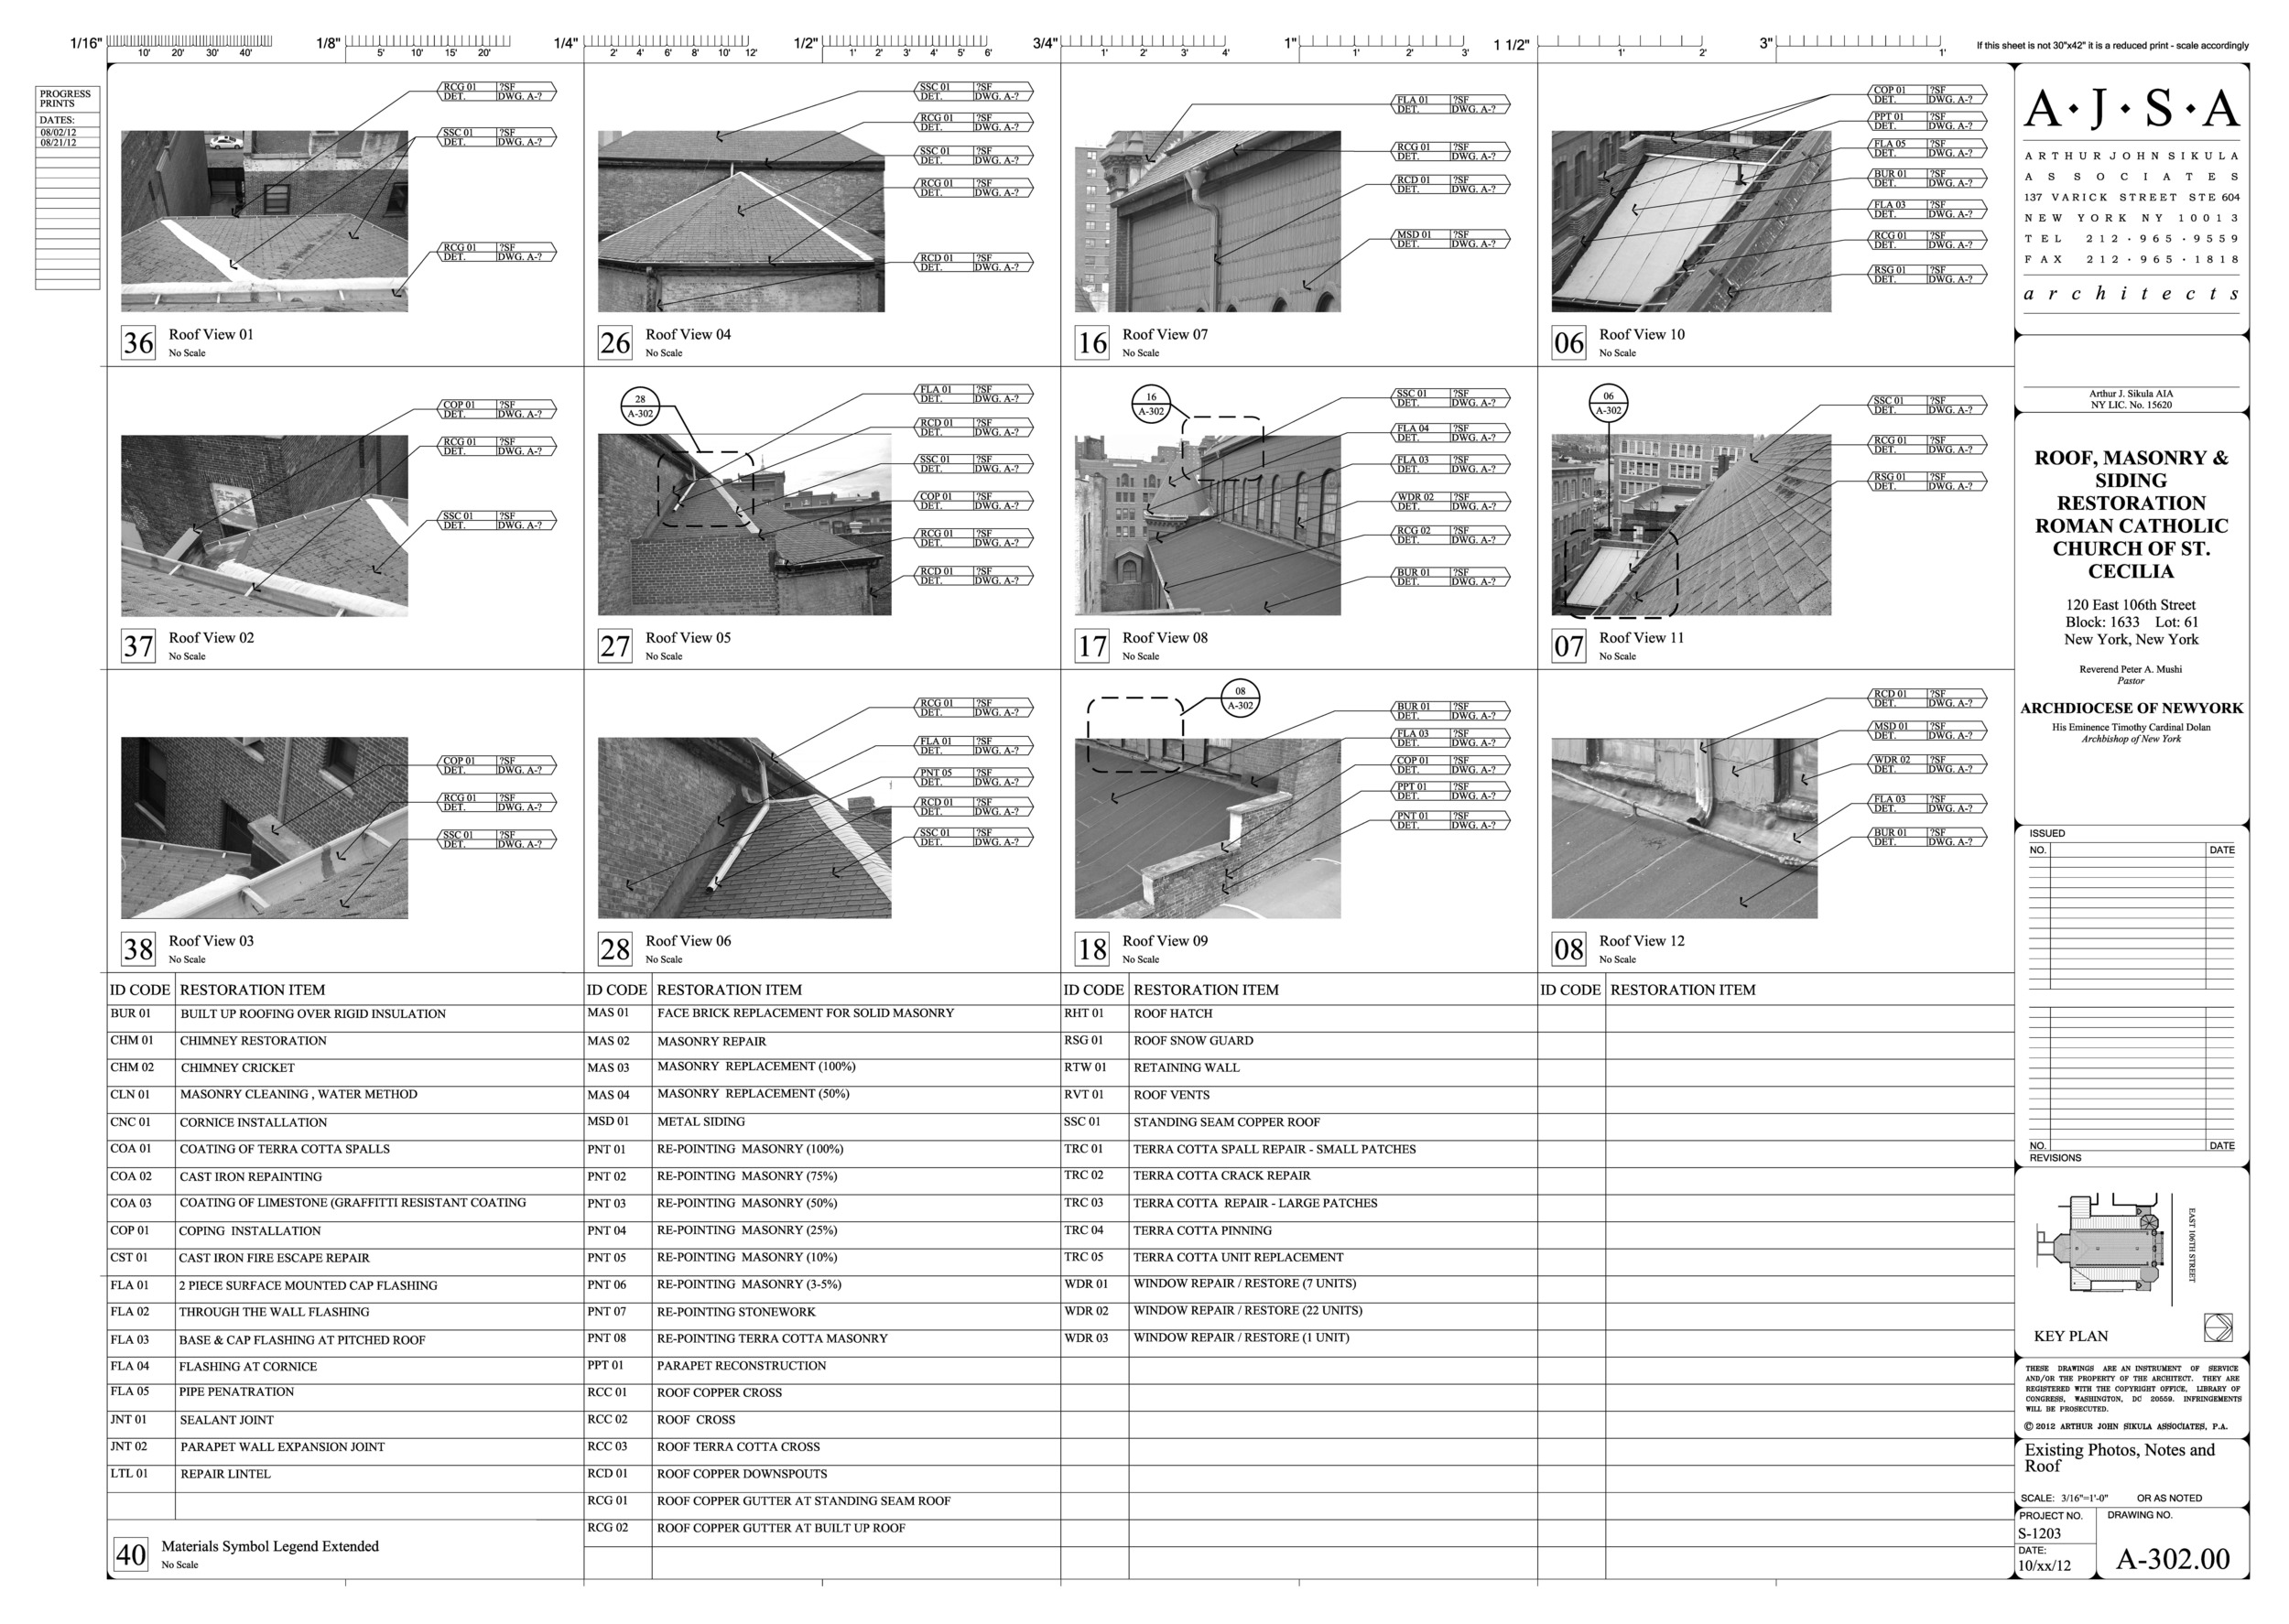 A-302 Existing Photos Notes Roof.jpg